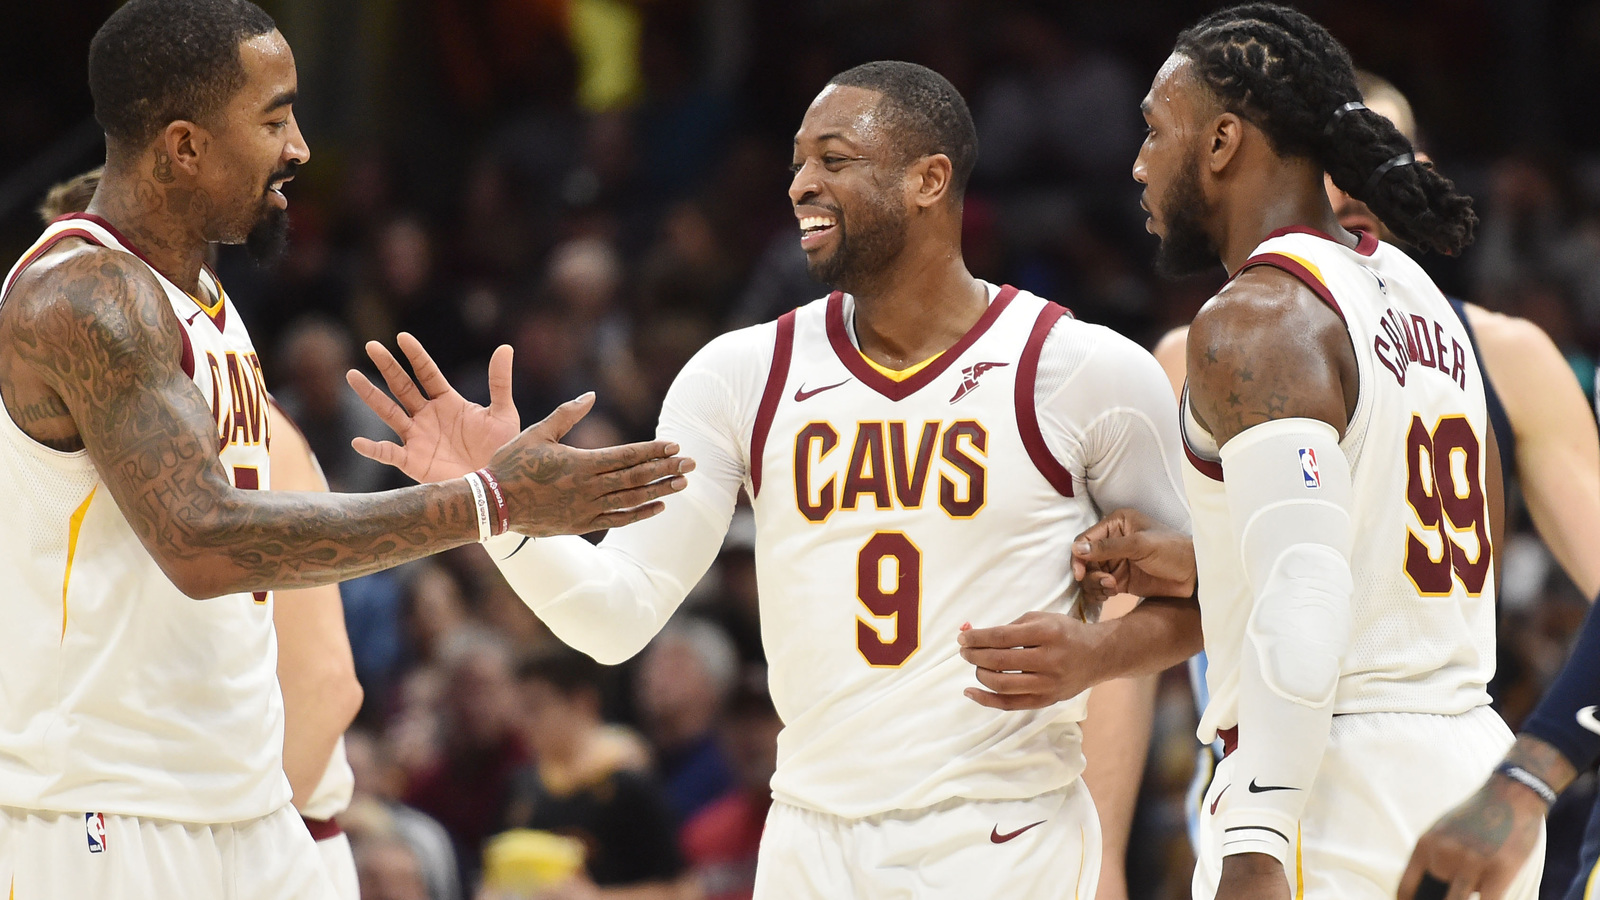 Dec 2, 2017; Cleveland, OH, USA; Cleveland Cavaliers guard Dwyane Wade (9)  and guard JR Smith (5) celebrate during the second half against the Memphis  ...